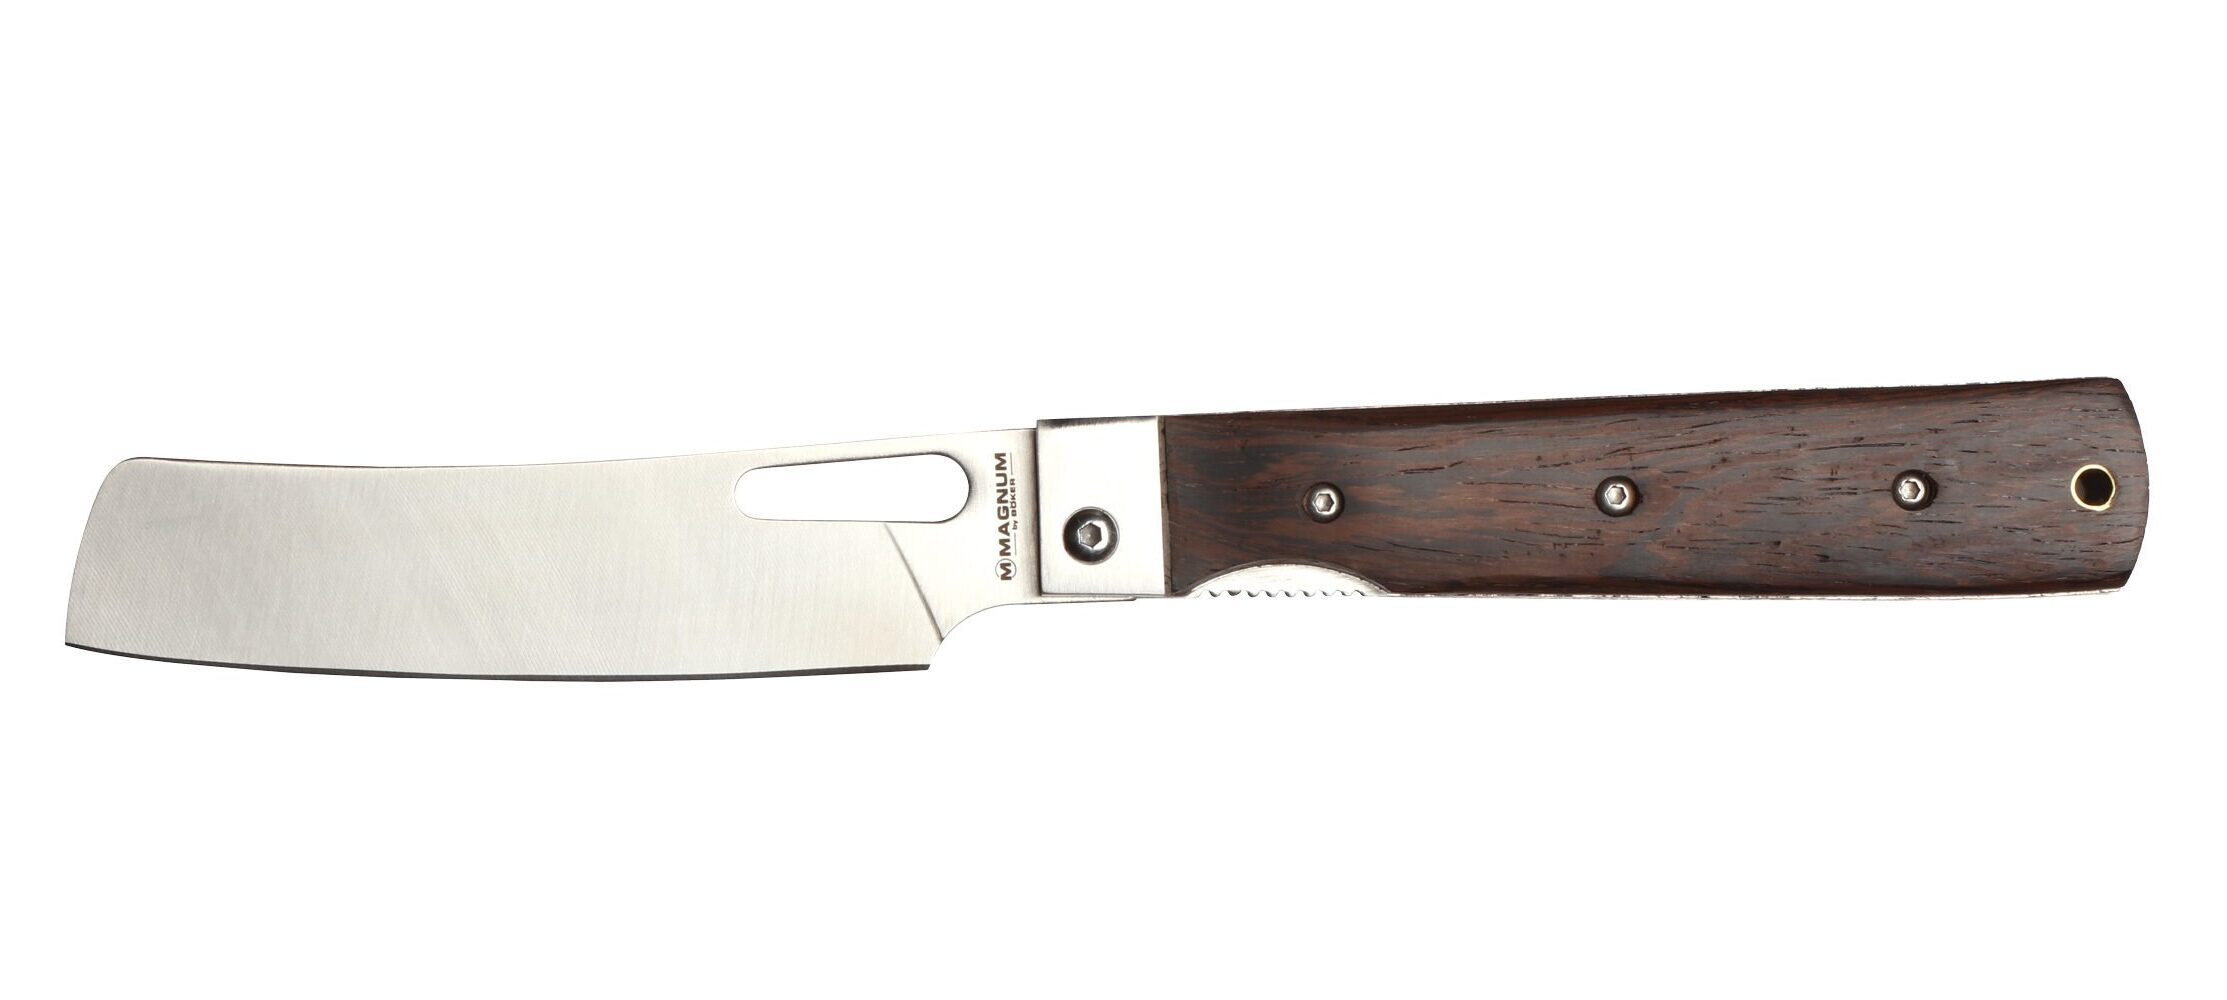 Pocket cleaver with brown handle made by Boker.